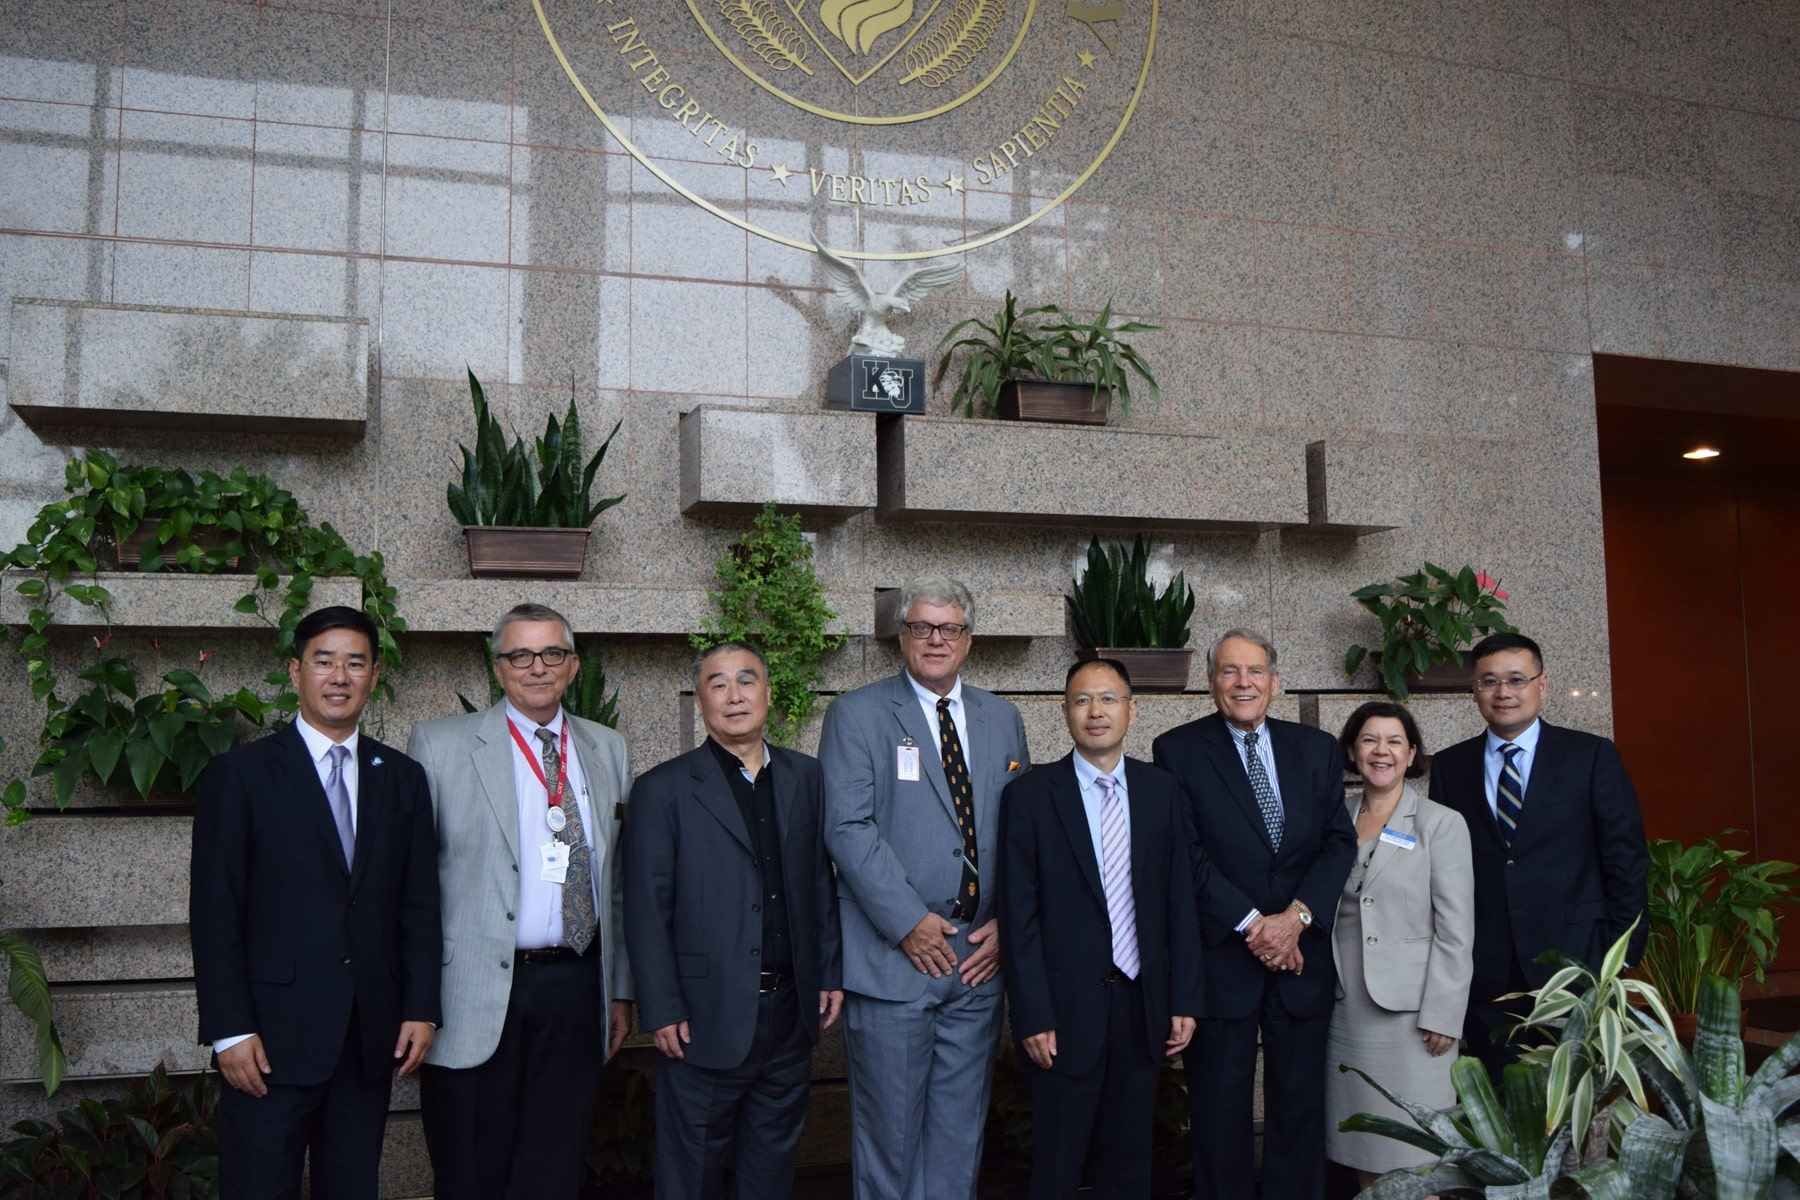 Delegation from China Visits the Ft. Lauderdale Campus